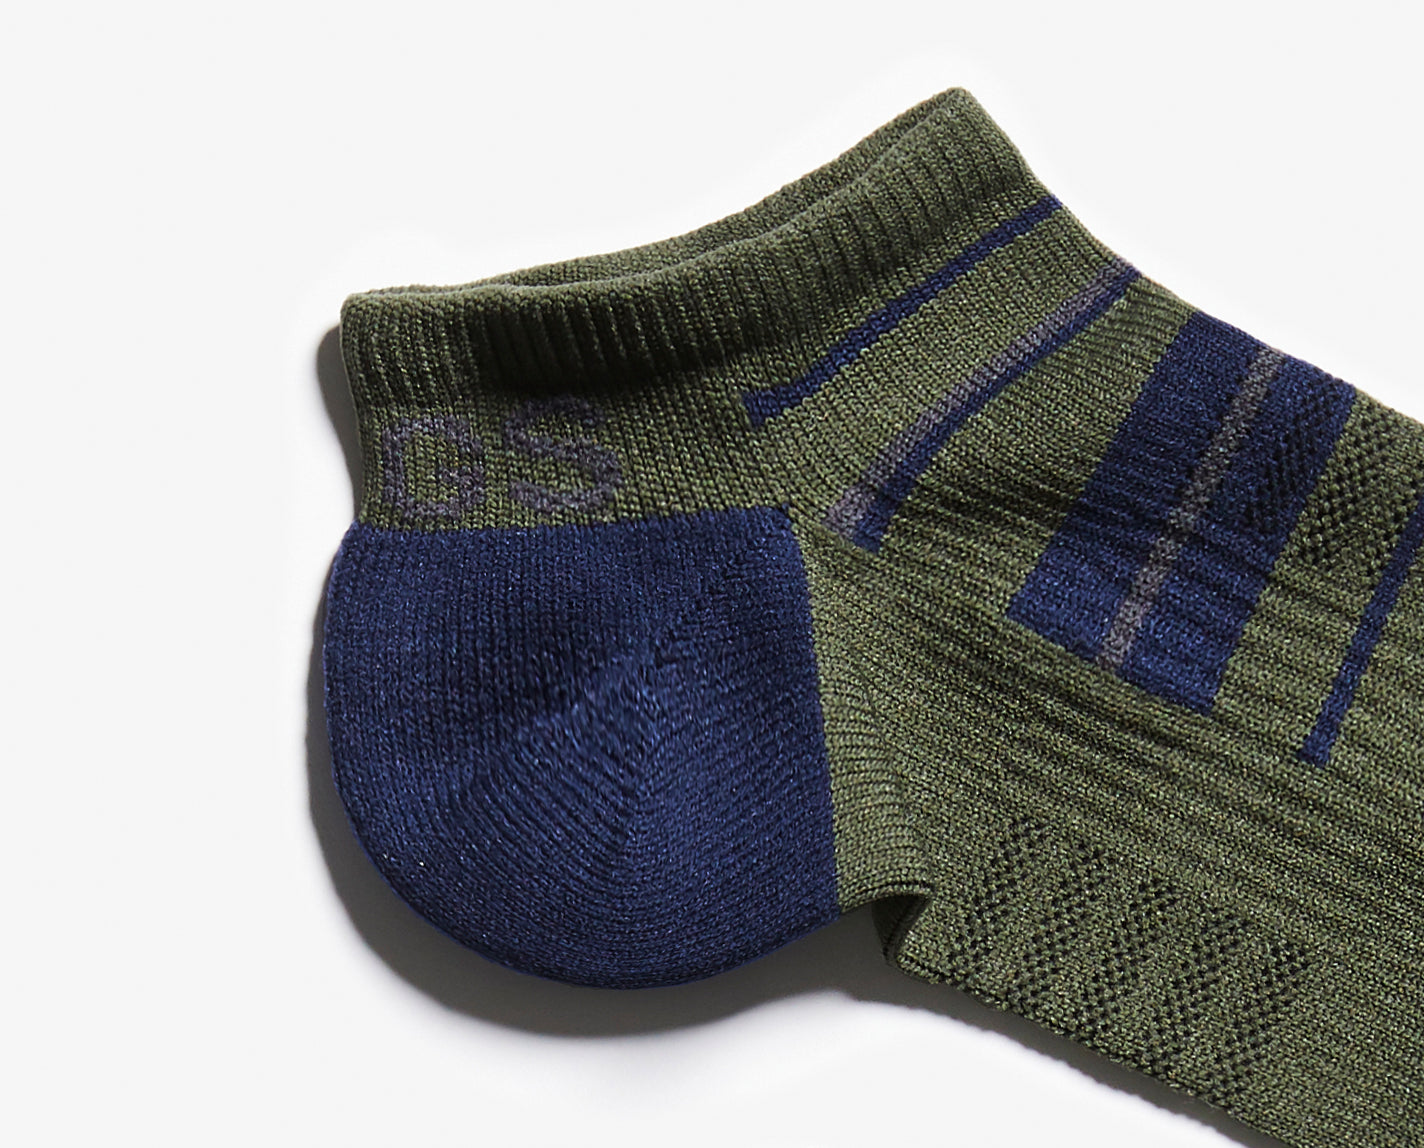 Don't mess with a classic. Our Olive Stripe 100% Awesome Ankle Socks are understated and match 99.9% of your FIGS. Bonus – they feature toe and heel padding, engineered arch support and our proprietary FIONdry moisture-wicking technology; and they're breathable and ridiculously soft.